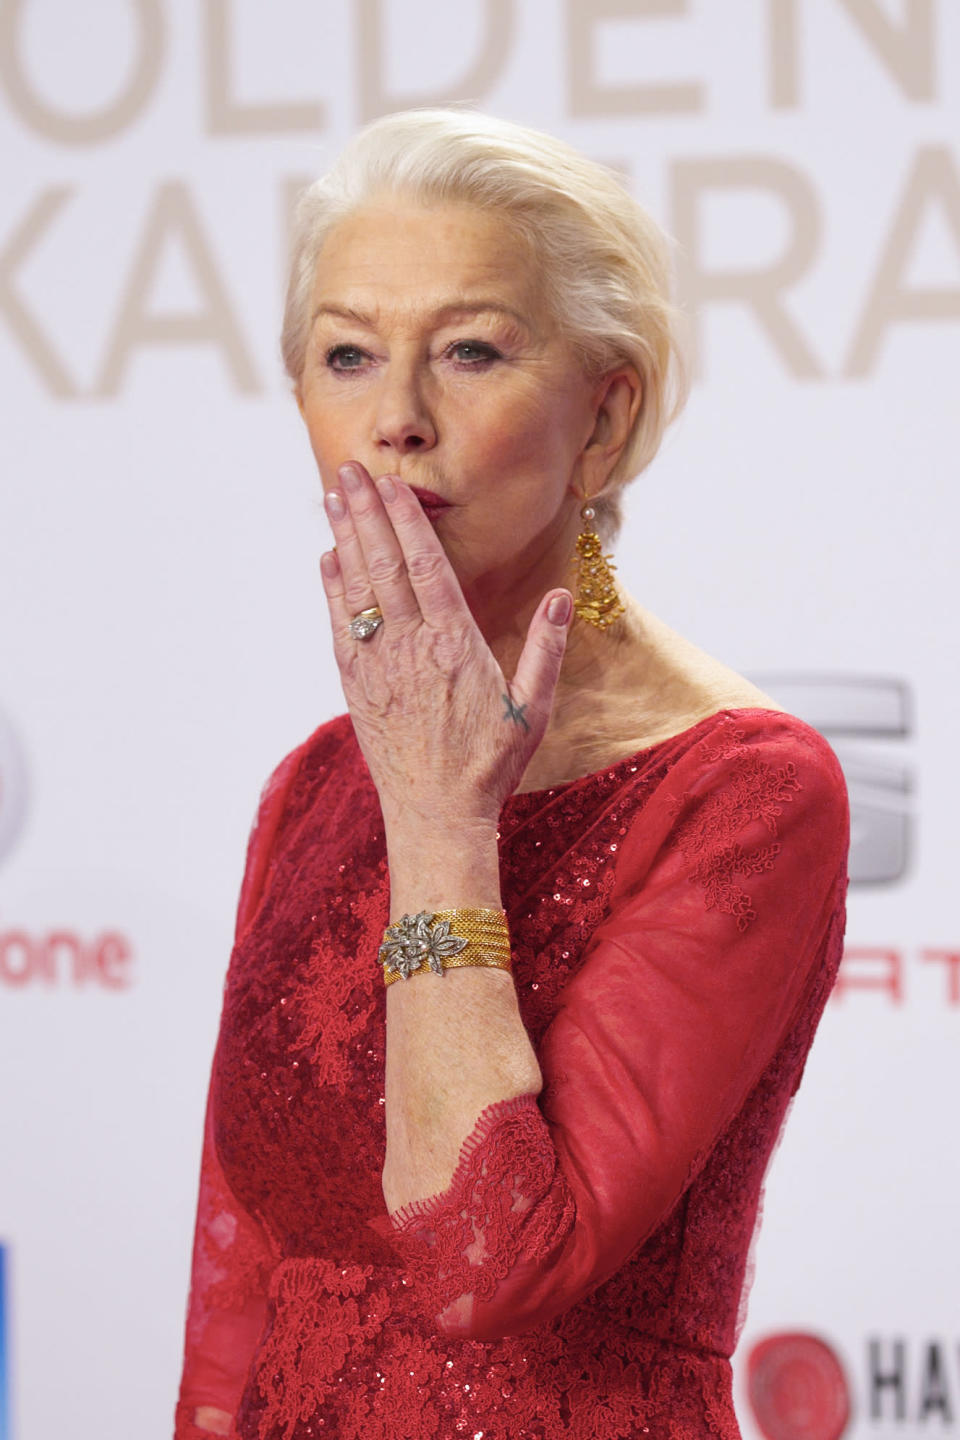 <p>In case you needed another reason to love Helen Mirren, the actress got a tattoo done with a safety pin (ouch!) while drunk. The interlocking Vs mean 'equal and opposite' with the notion that two people can be different but still has equal value to yourself. <em>[Photo: Getty]</em> </p>